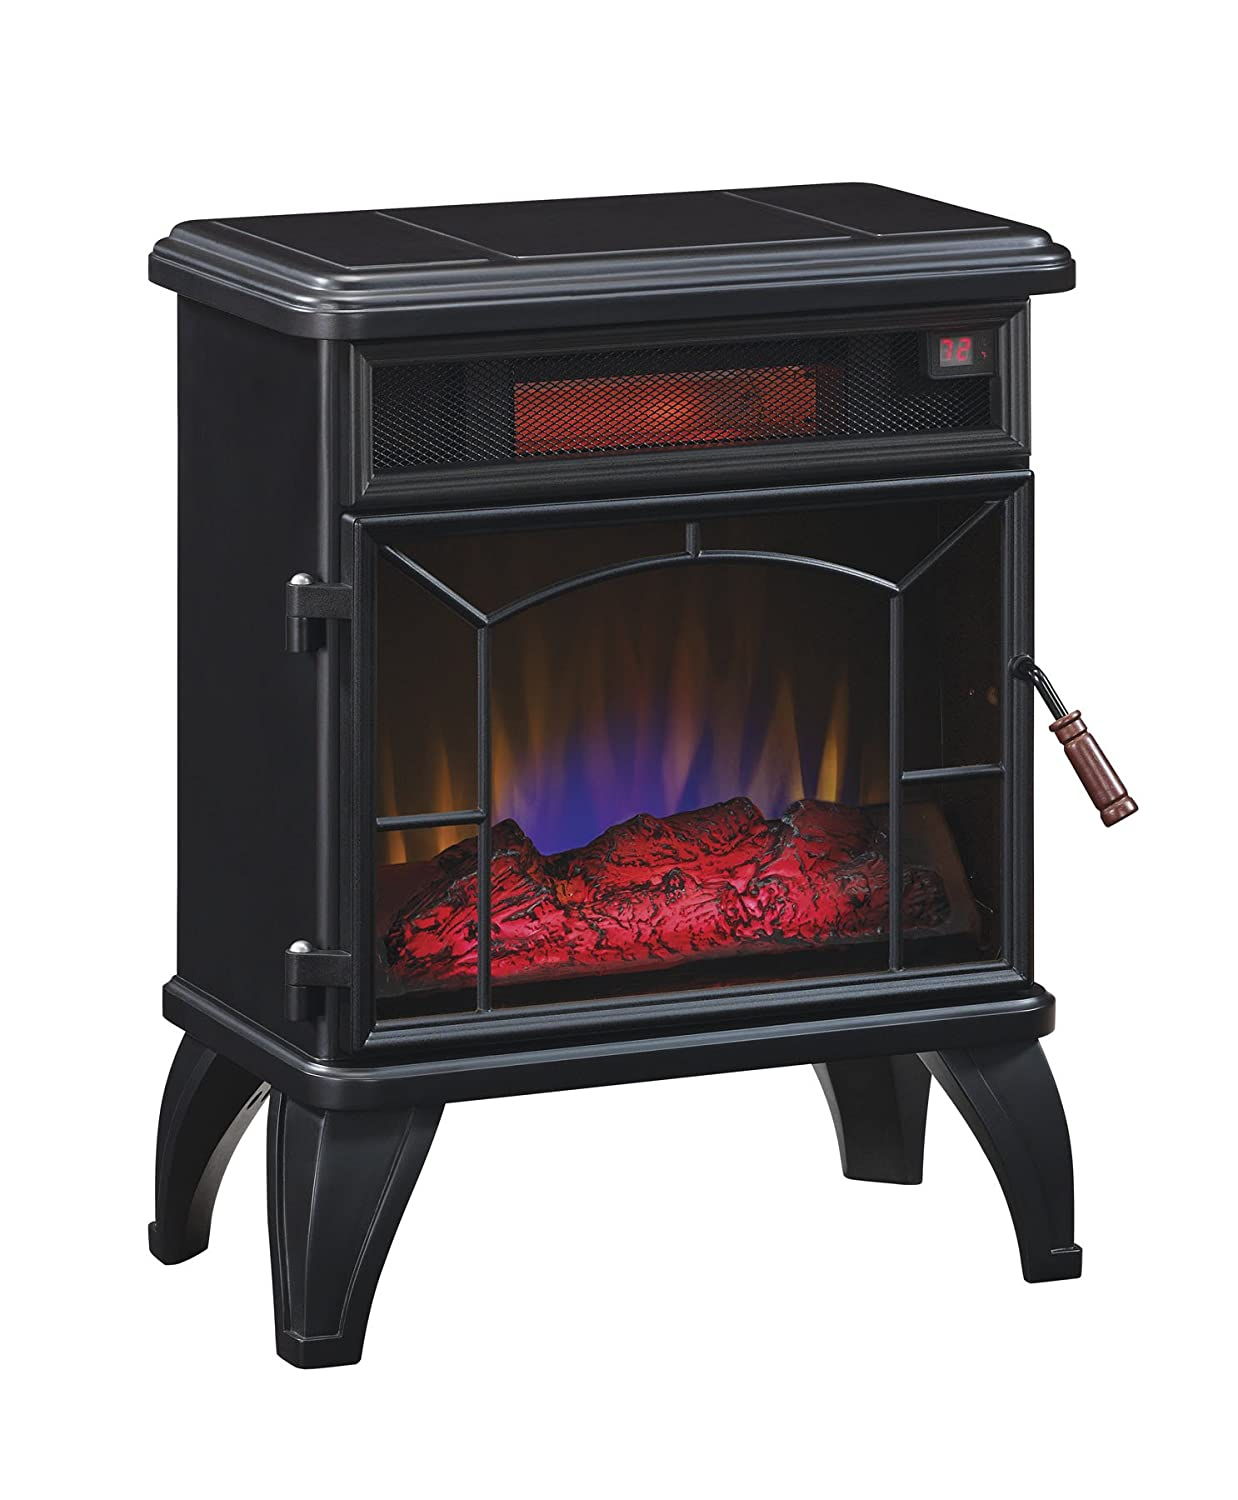 this duraflame infrared quartz heater is possibly the best option at